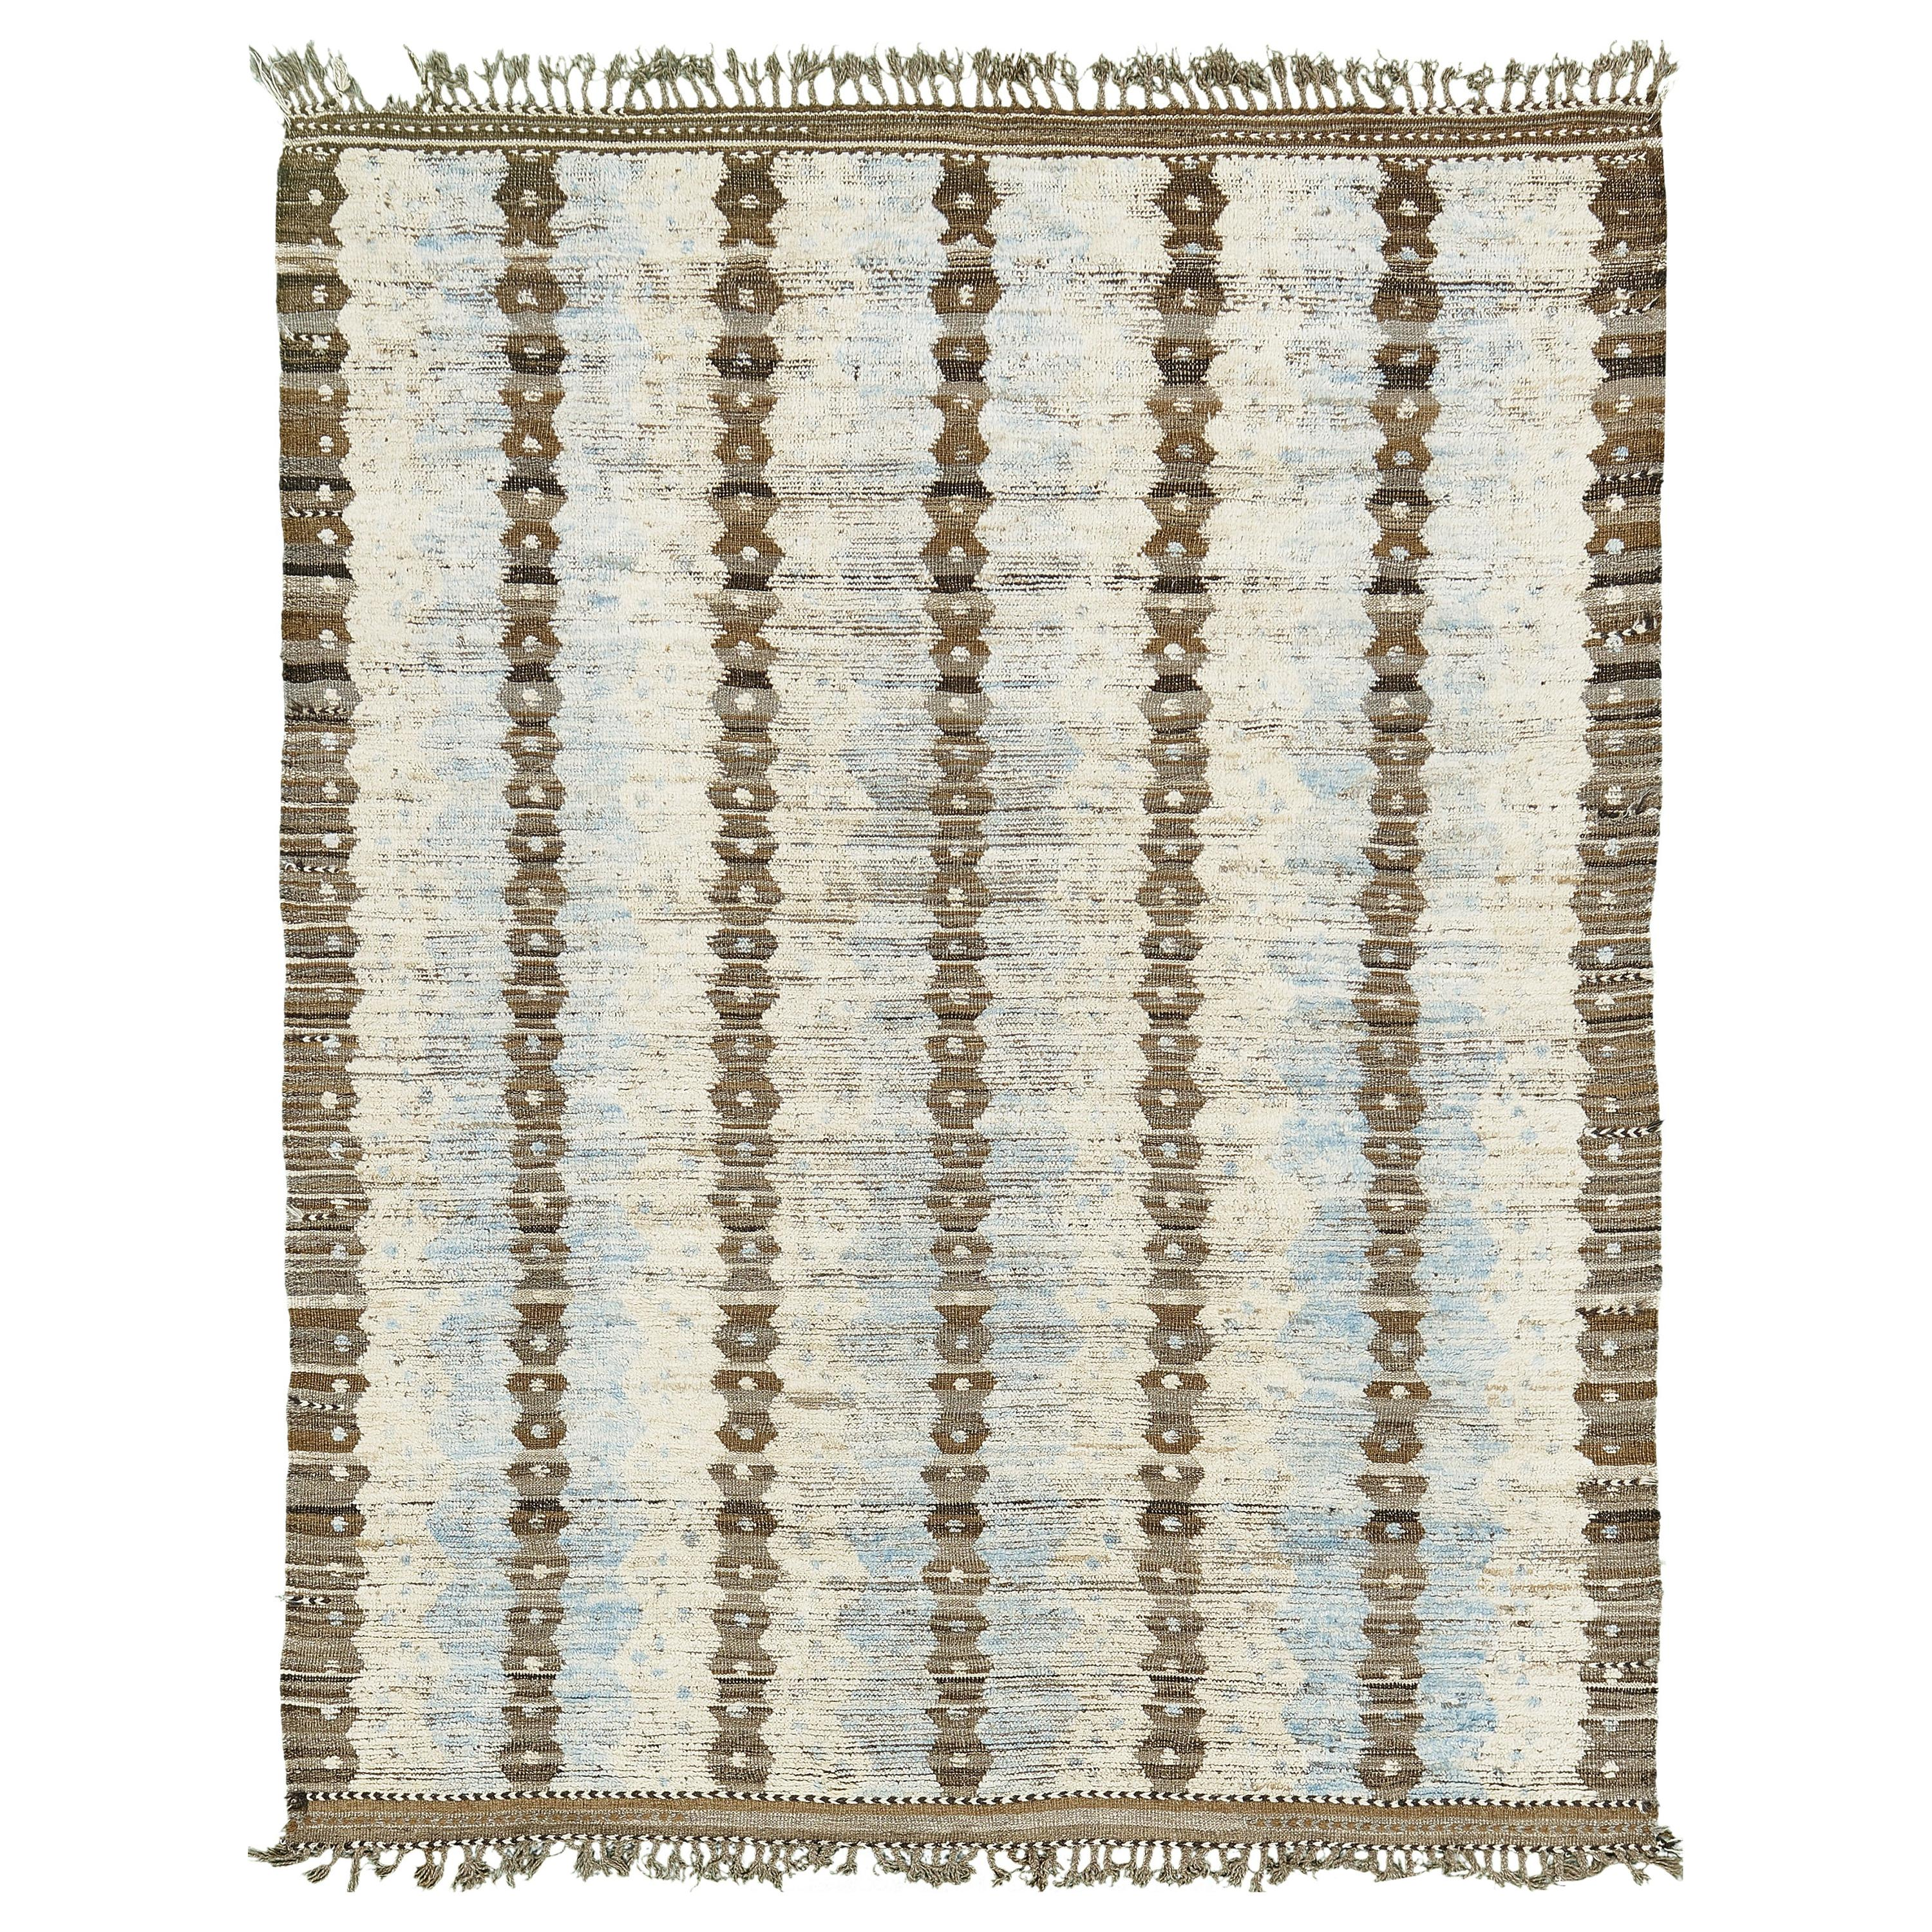 Nazmiyal Collection Geometric Modern Distressed Rug  7 ft 7 in x 9 ft 8 in